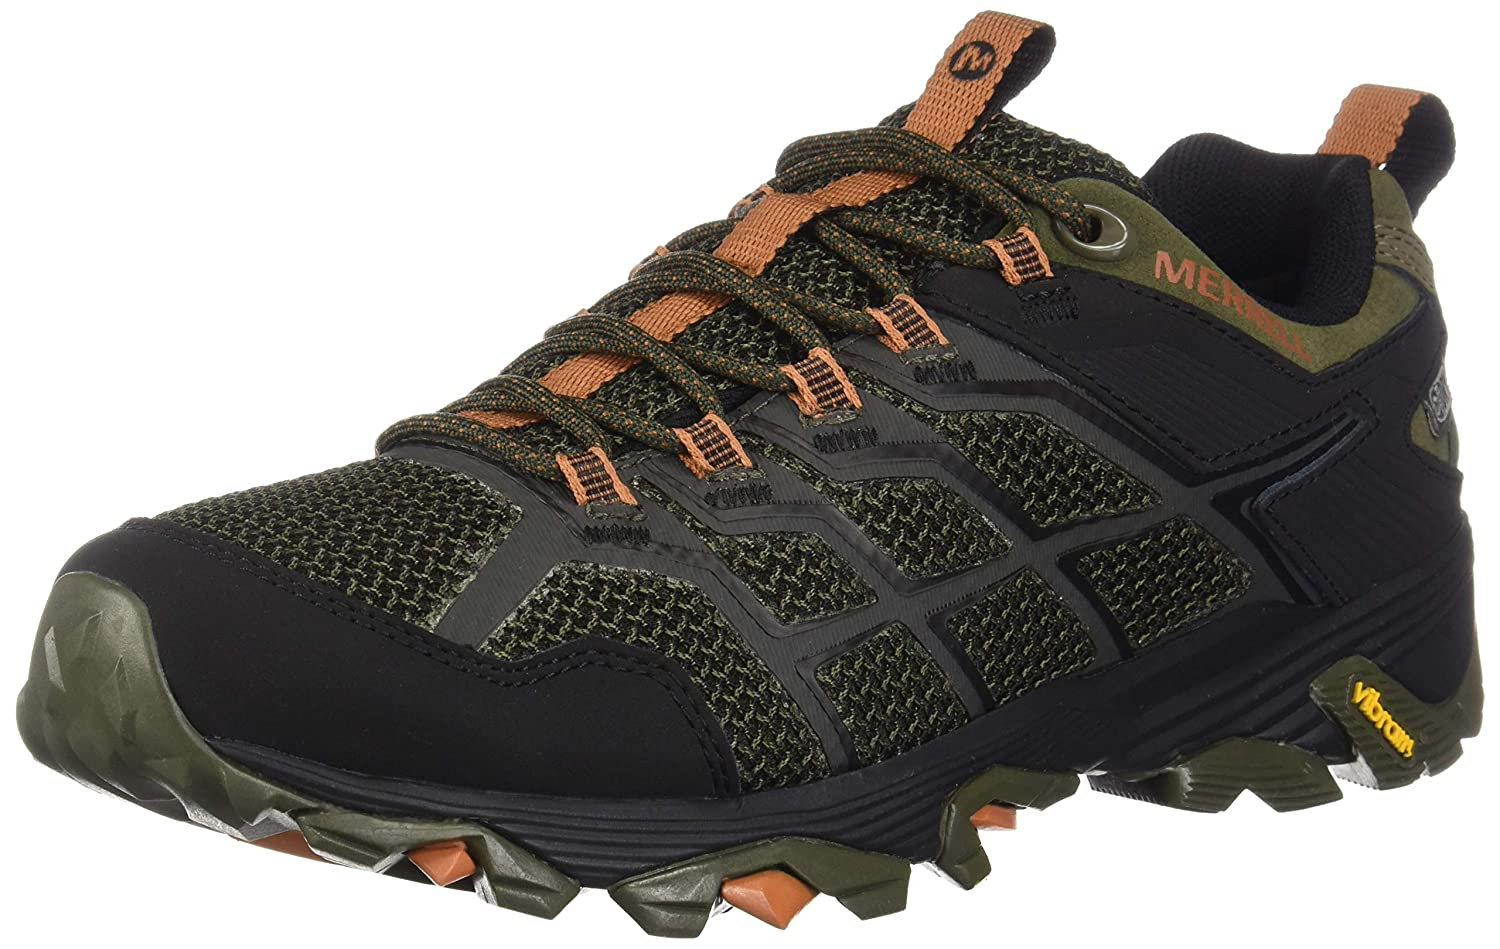 is the merrell moab fst waterproof case